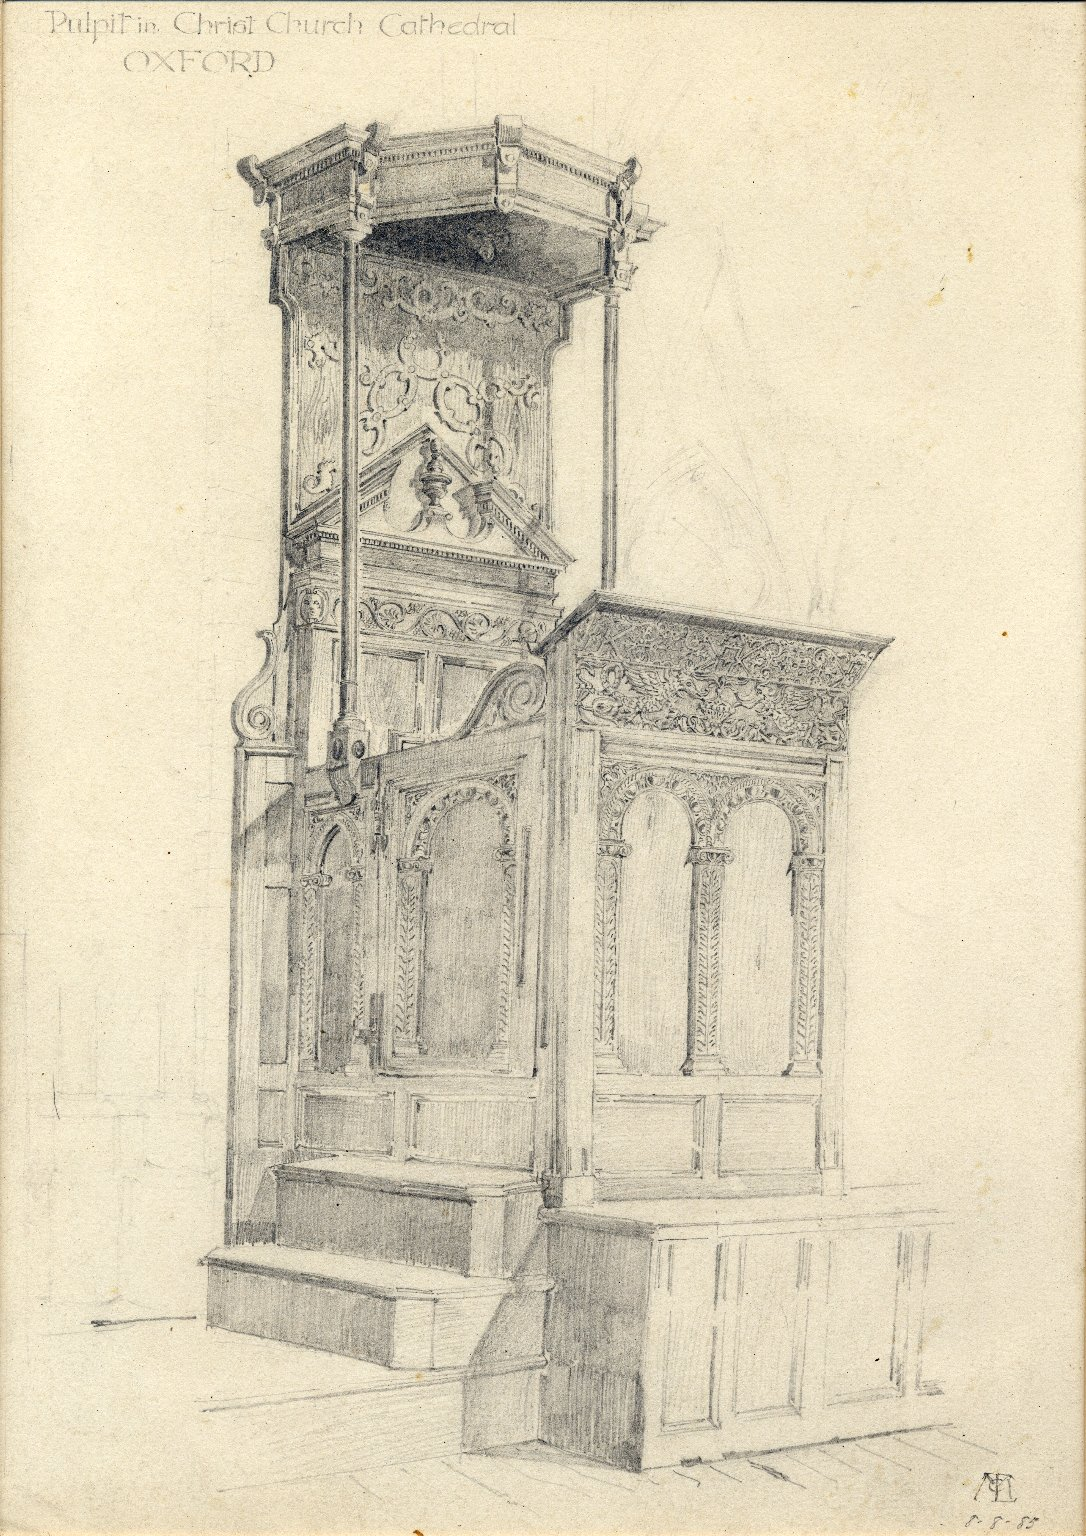 Pulpit at Christ Church Cathedral